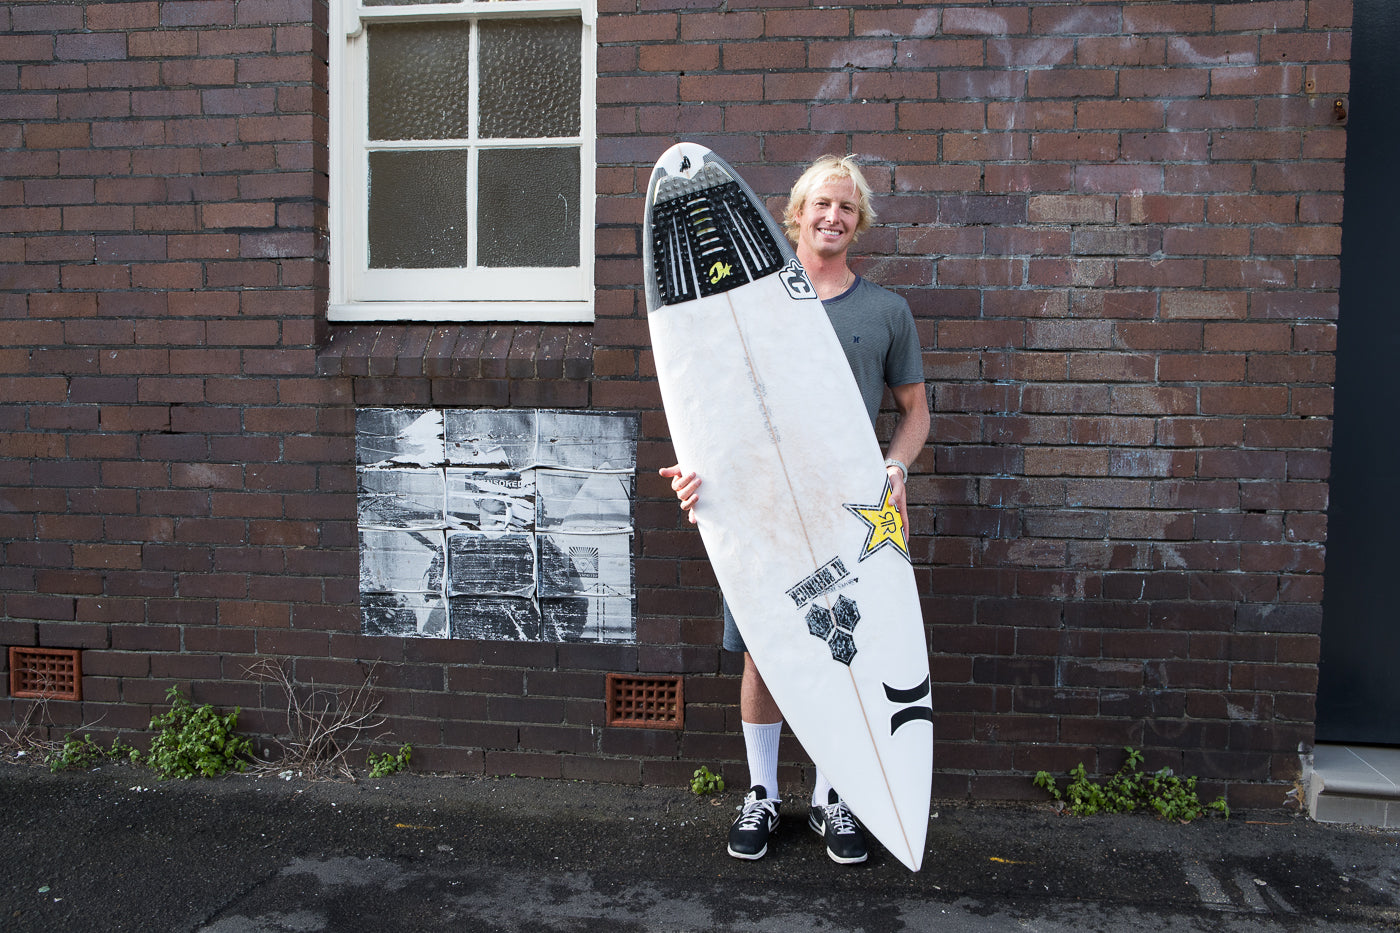 Creatures of Leisure NAT Young Board Traction Pad